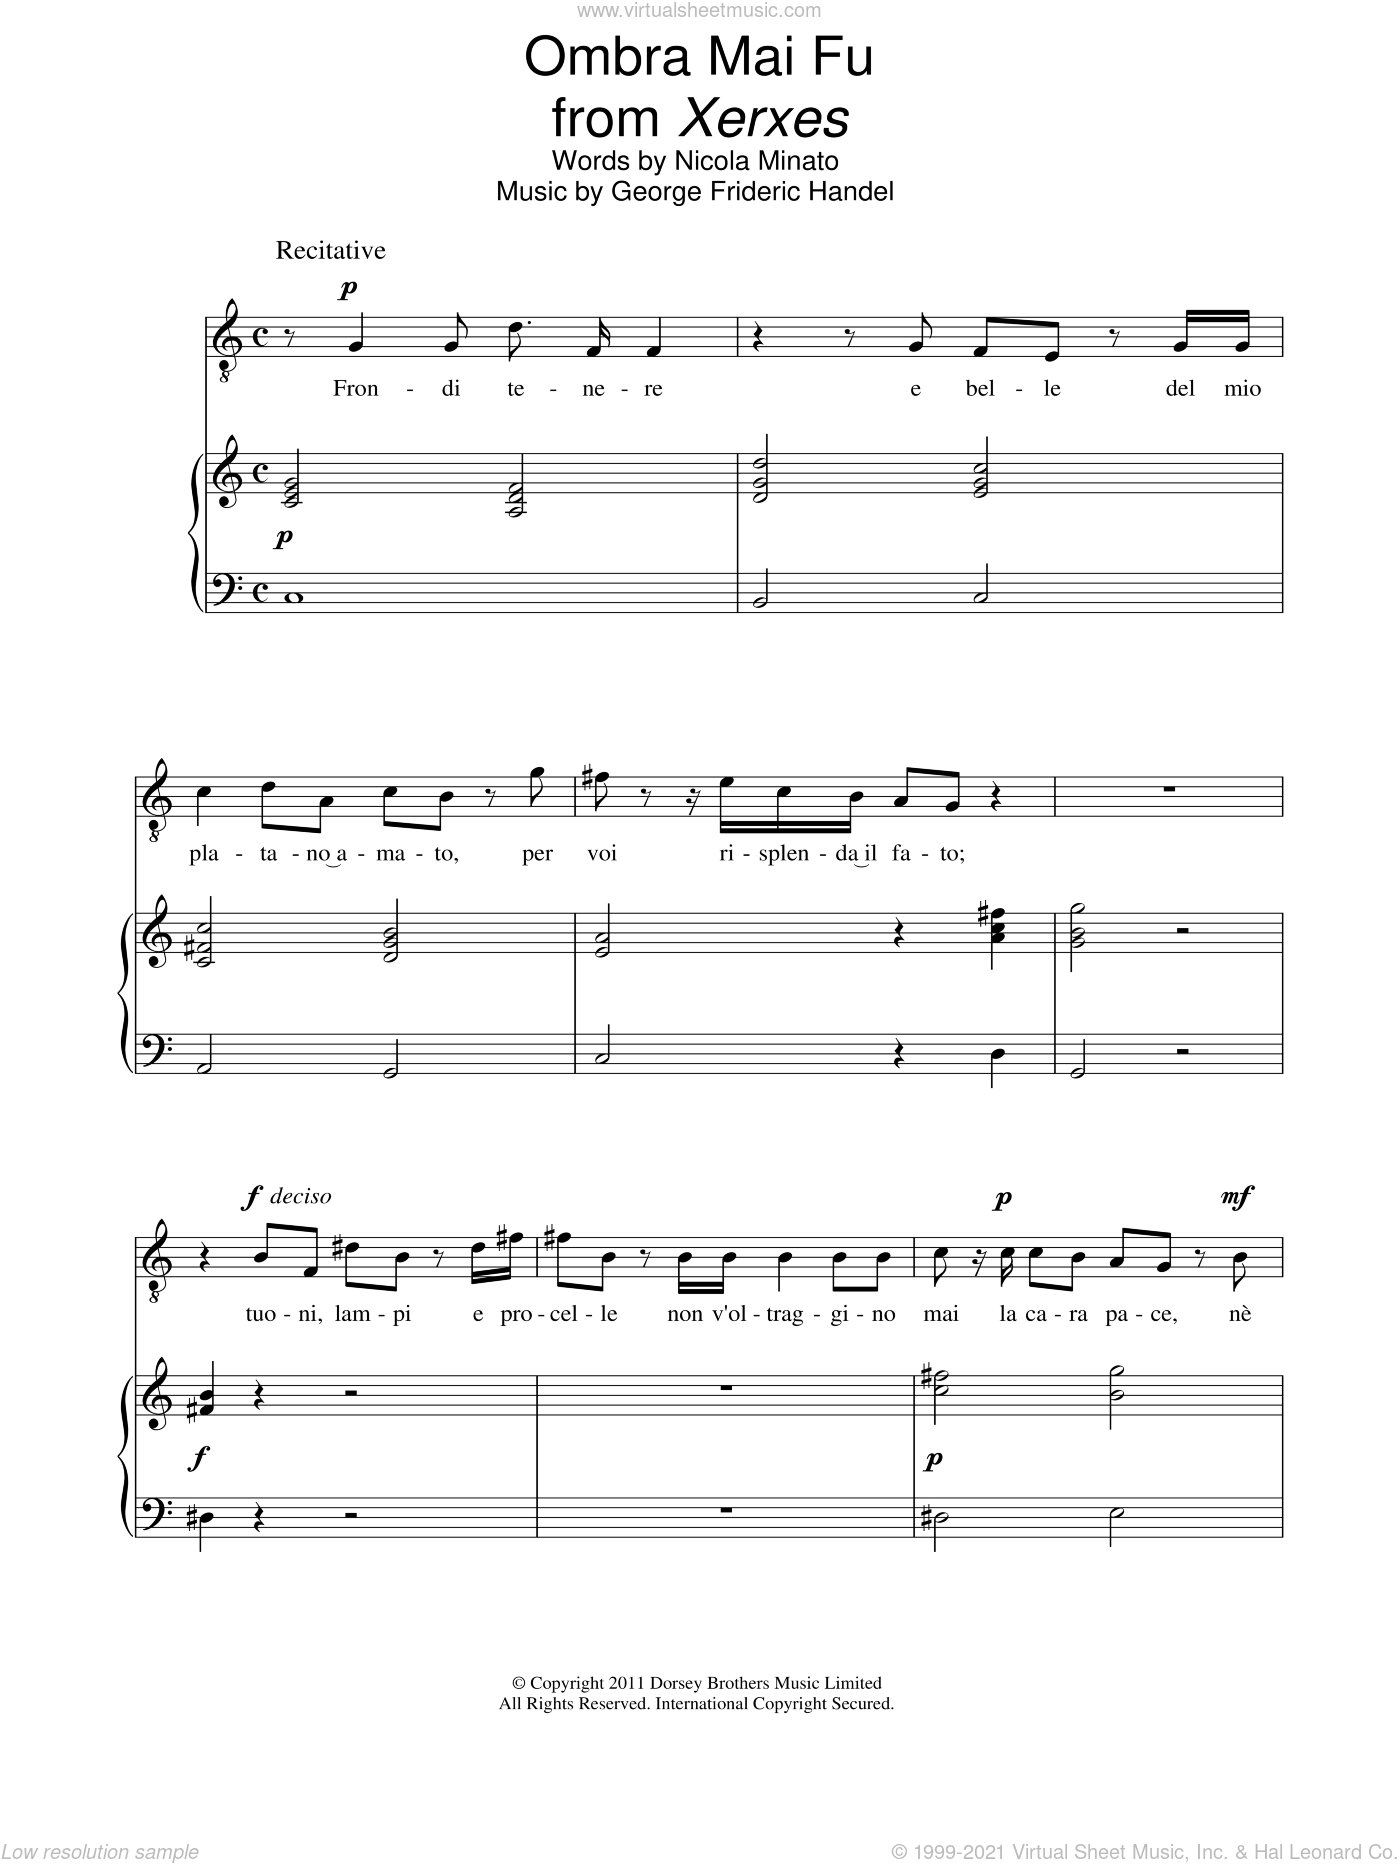 Ombra Mai Fu sheet music for voice and piano by Nicola Minato